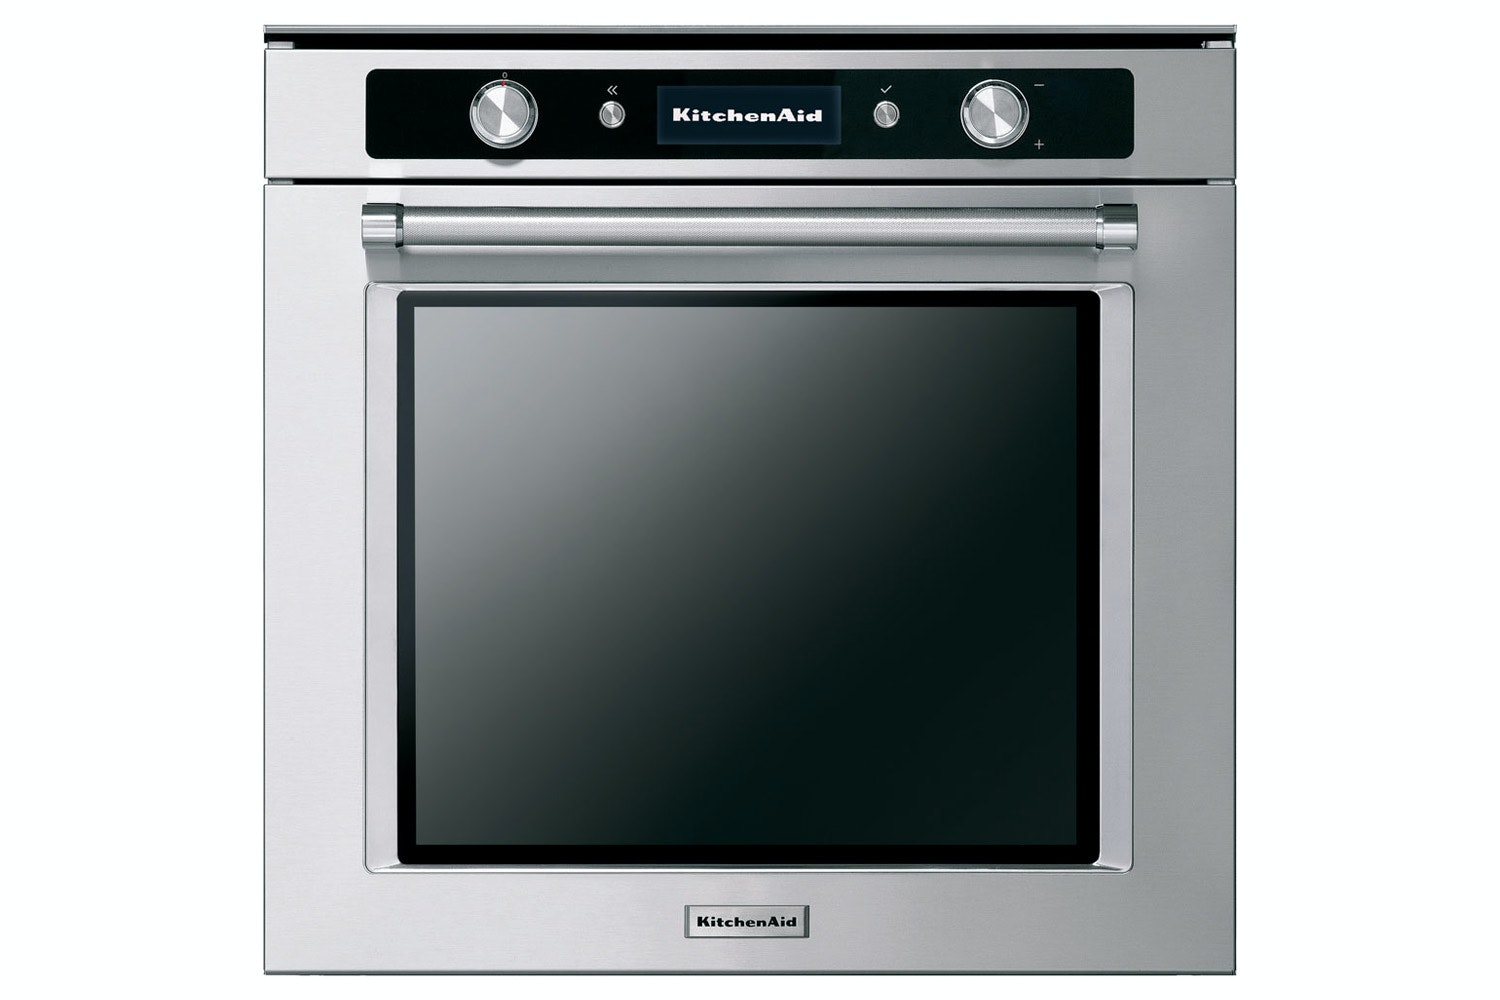 KitchenAid Built-in Pyrolytic Oven | KOTSP60600